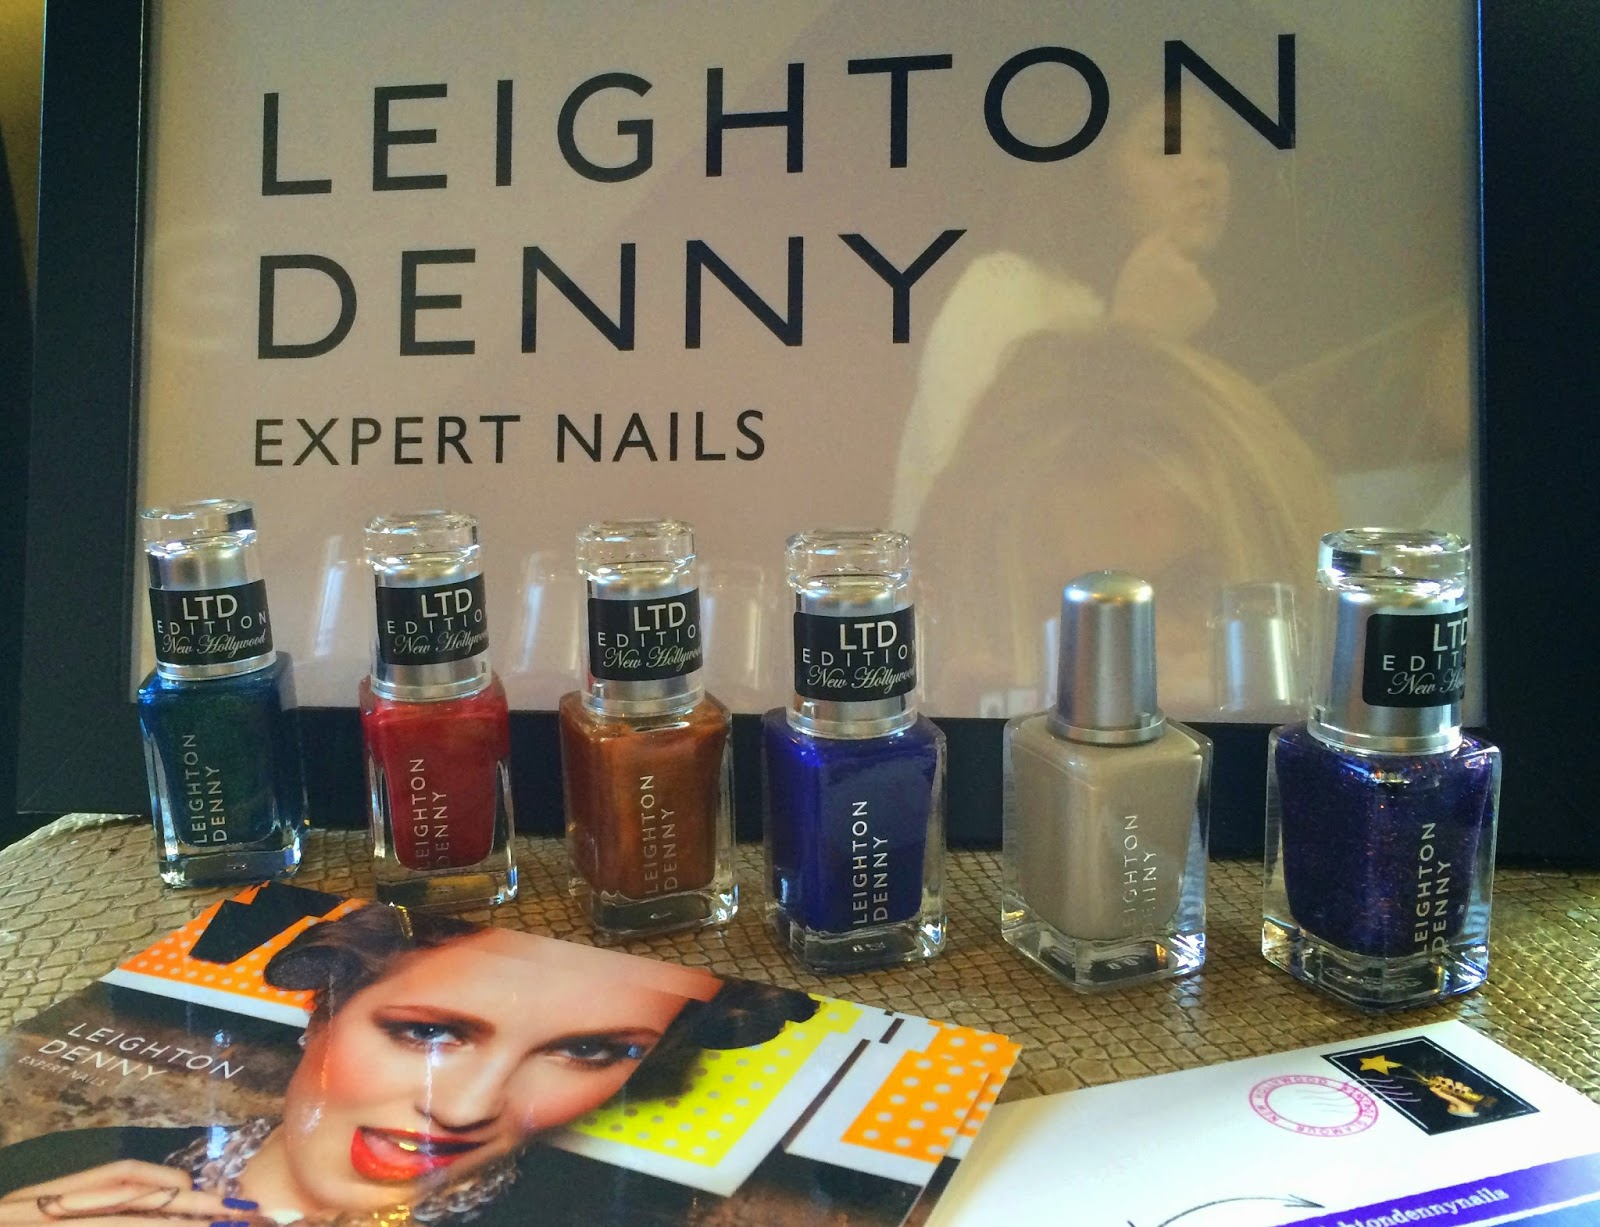 bloggers-love-fashion-week-2014-leighton-denny